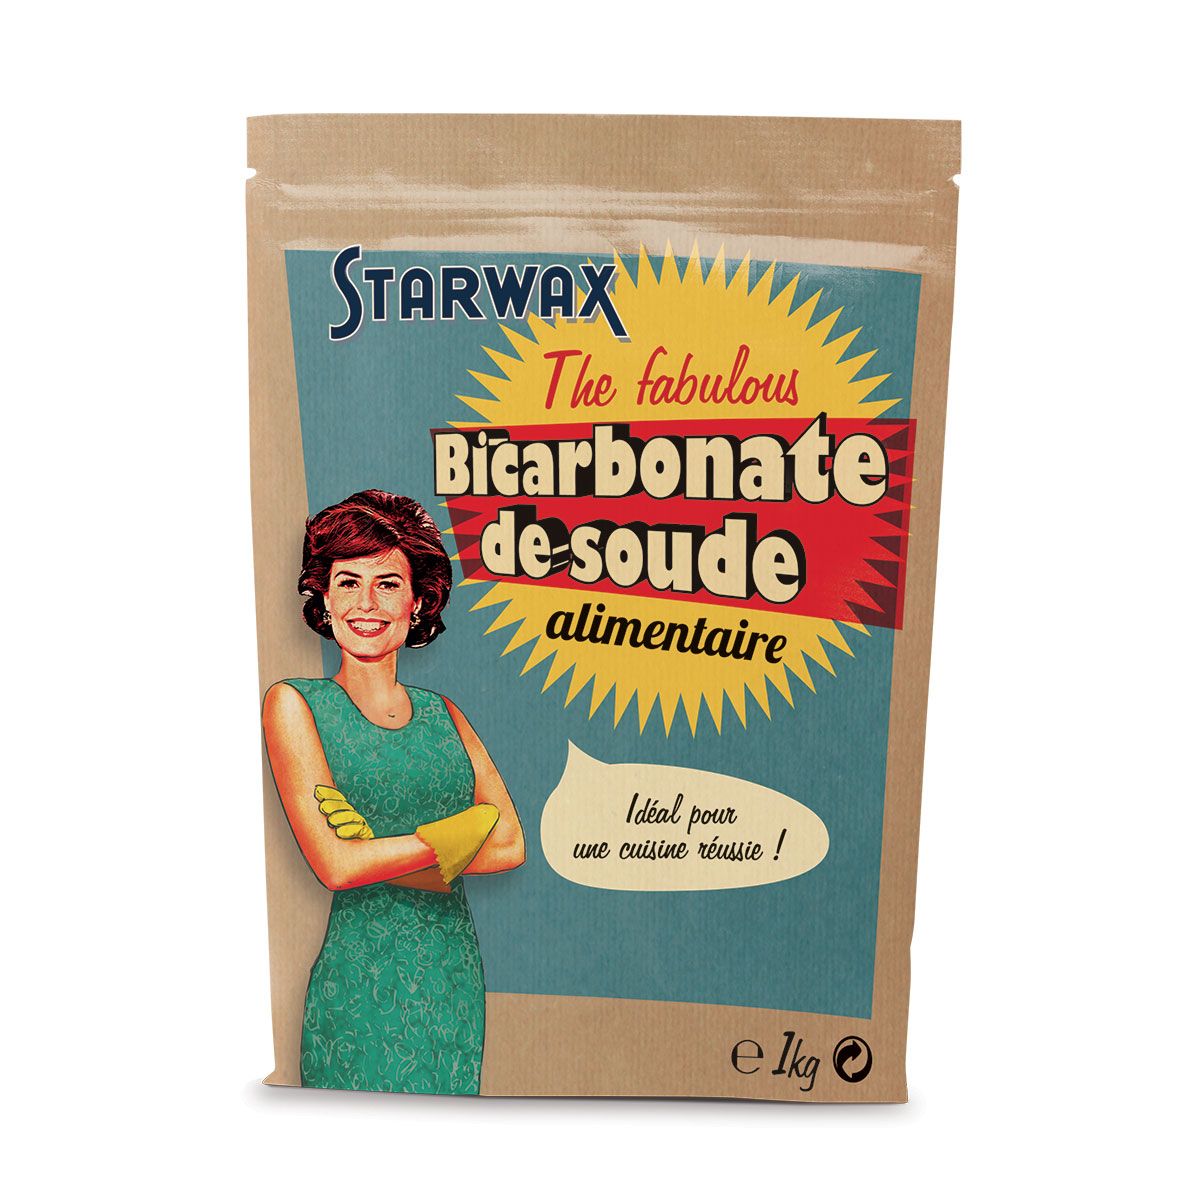 Bicarbonate de soude alimentaire starwax produits d for Detartrage bicarbonate de soude